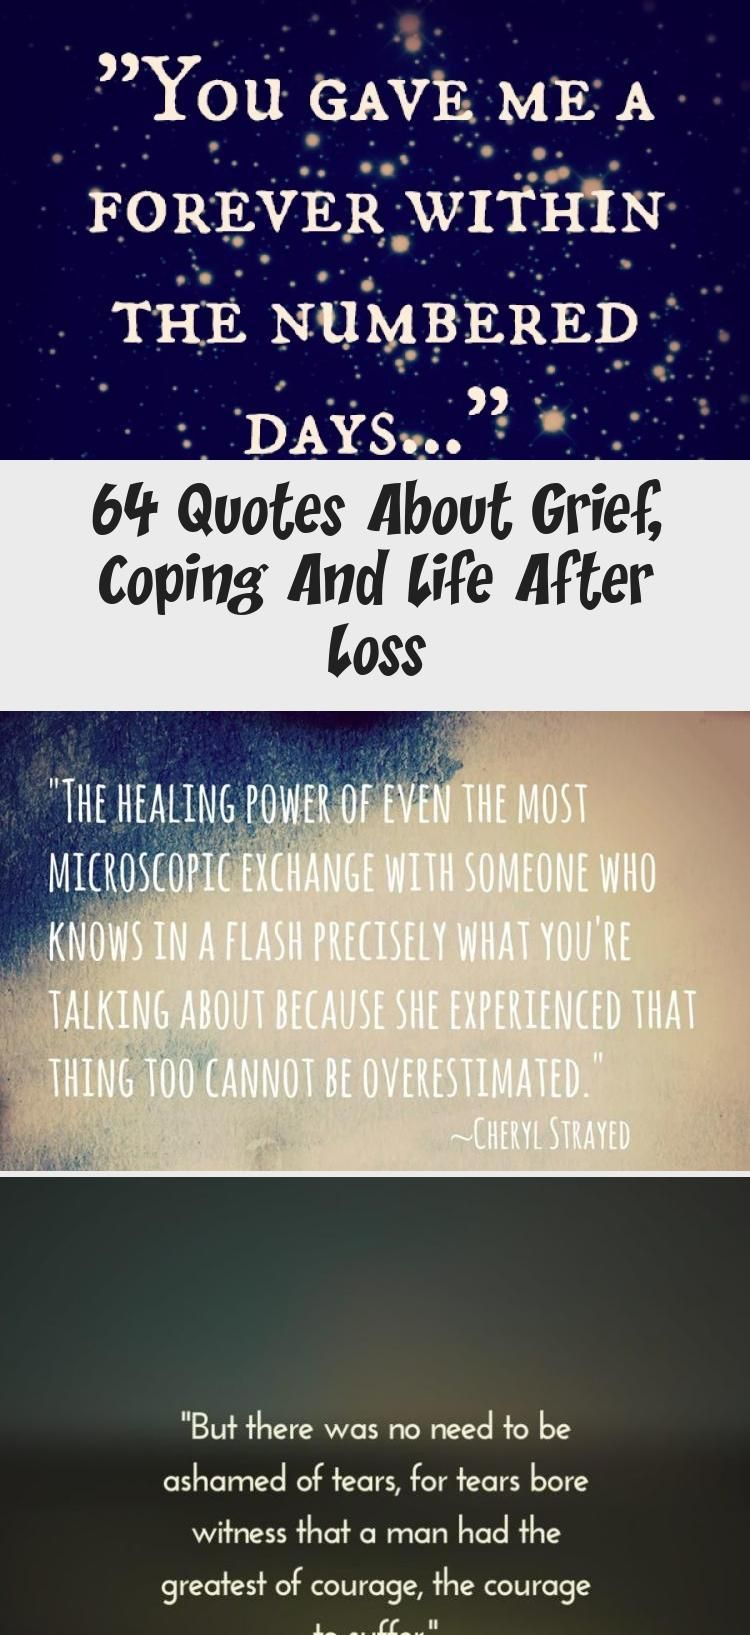 64 Quotes About Grief Coping And Life After Loss In 2020 With Images Grief Quote Badass Quotes Grief Quotes